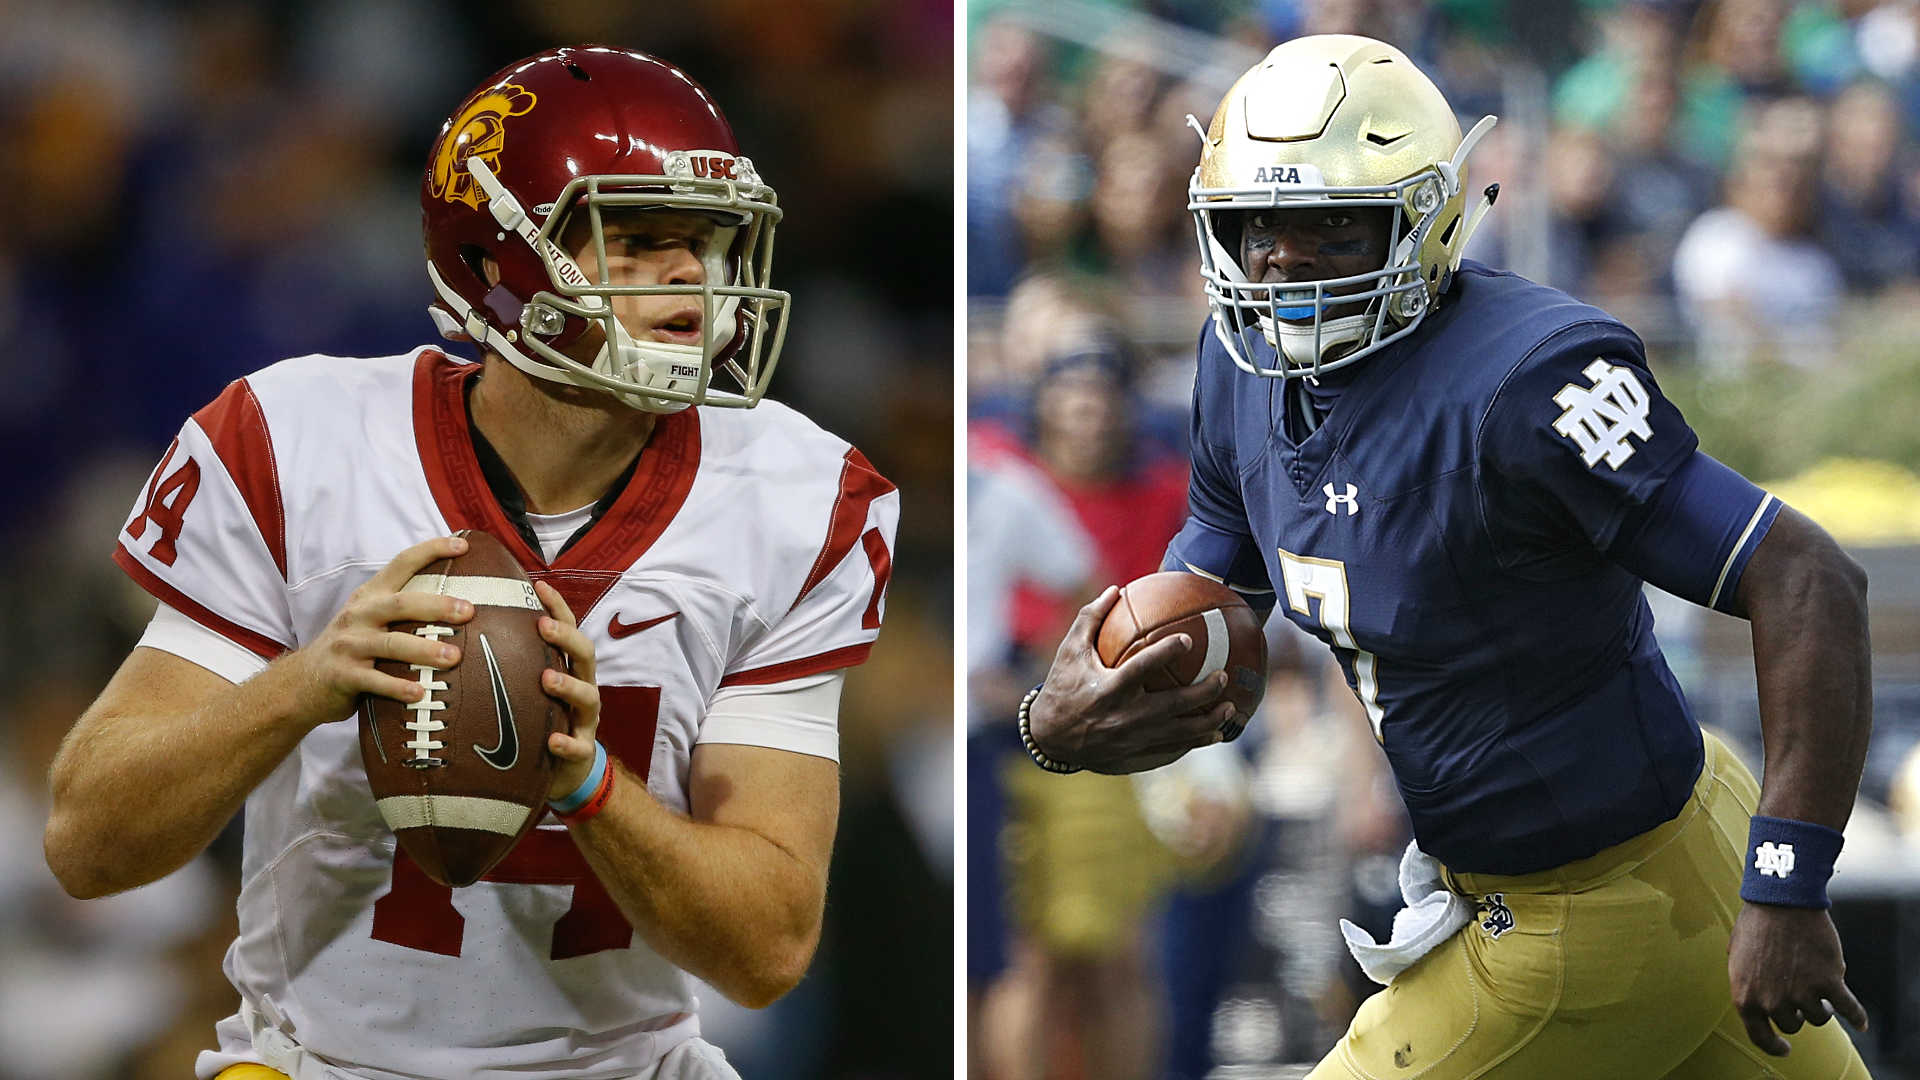 USC at Notre Dame Fighting Irish cruise to blowout win NCAA Football